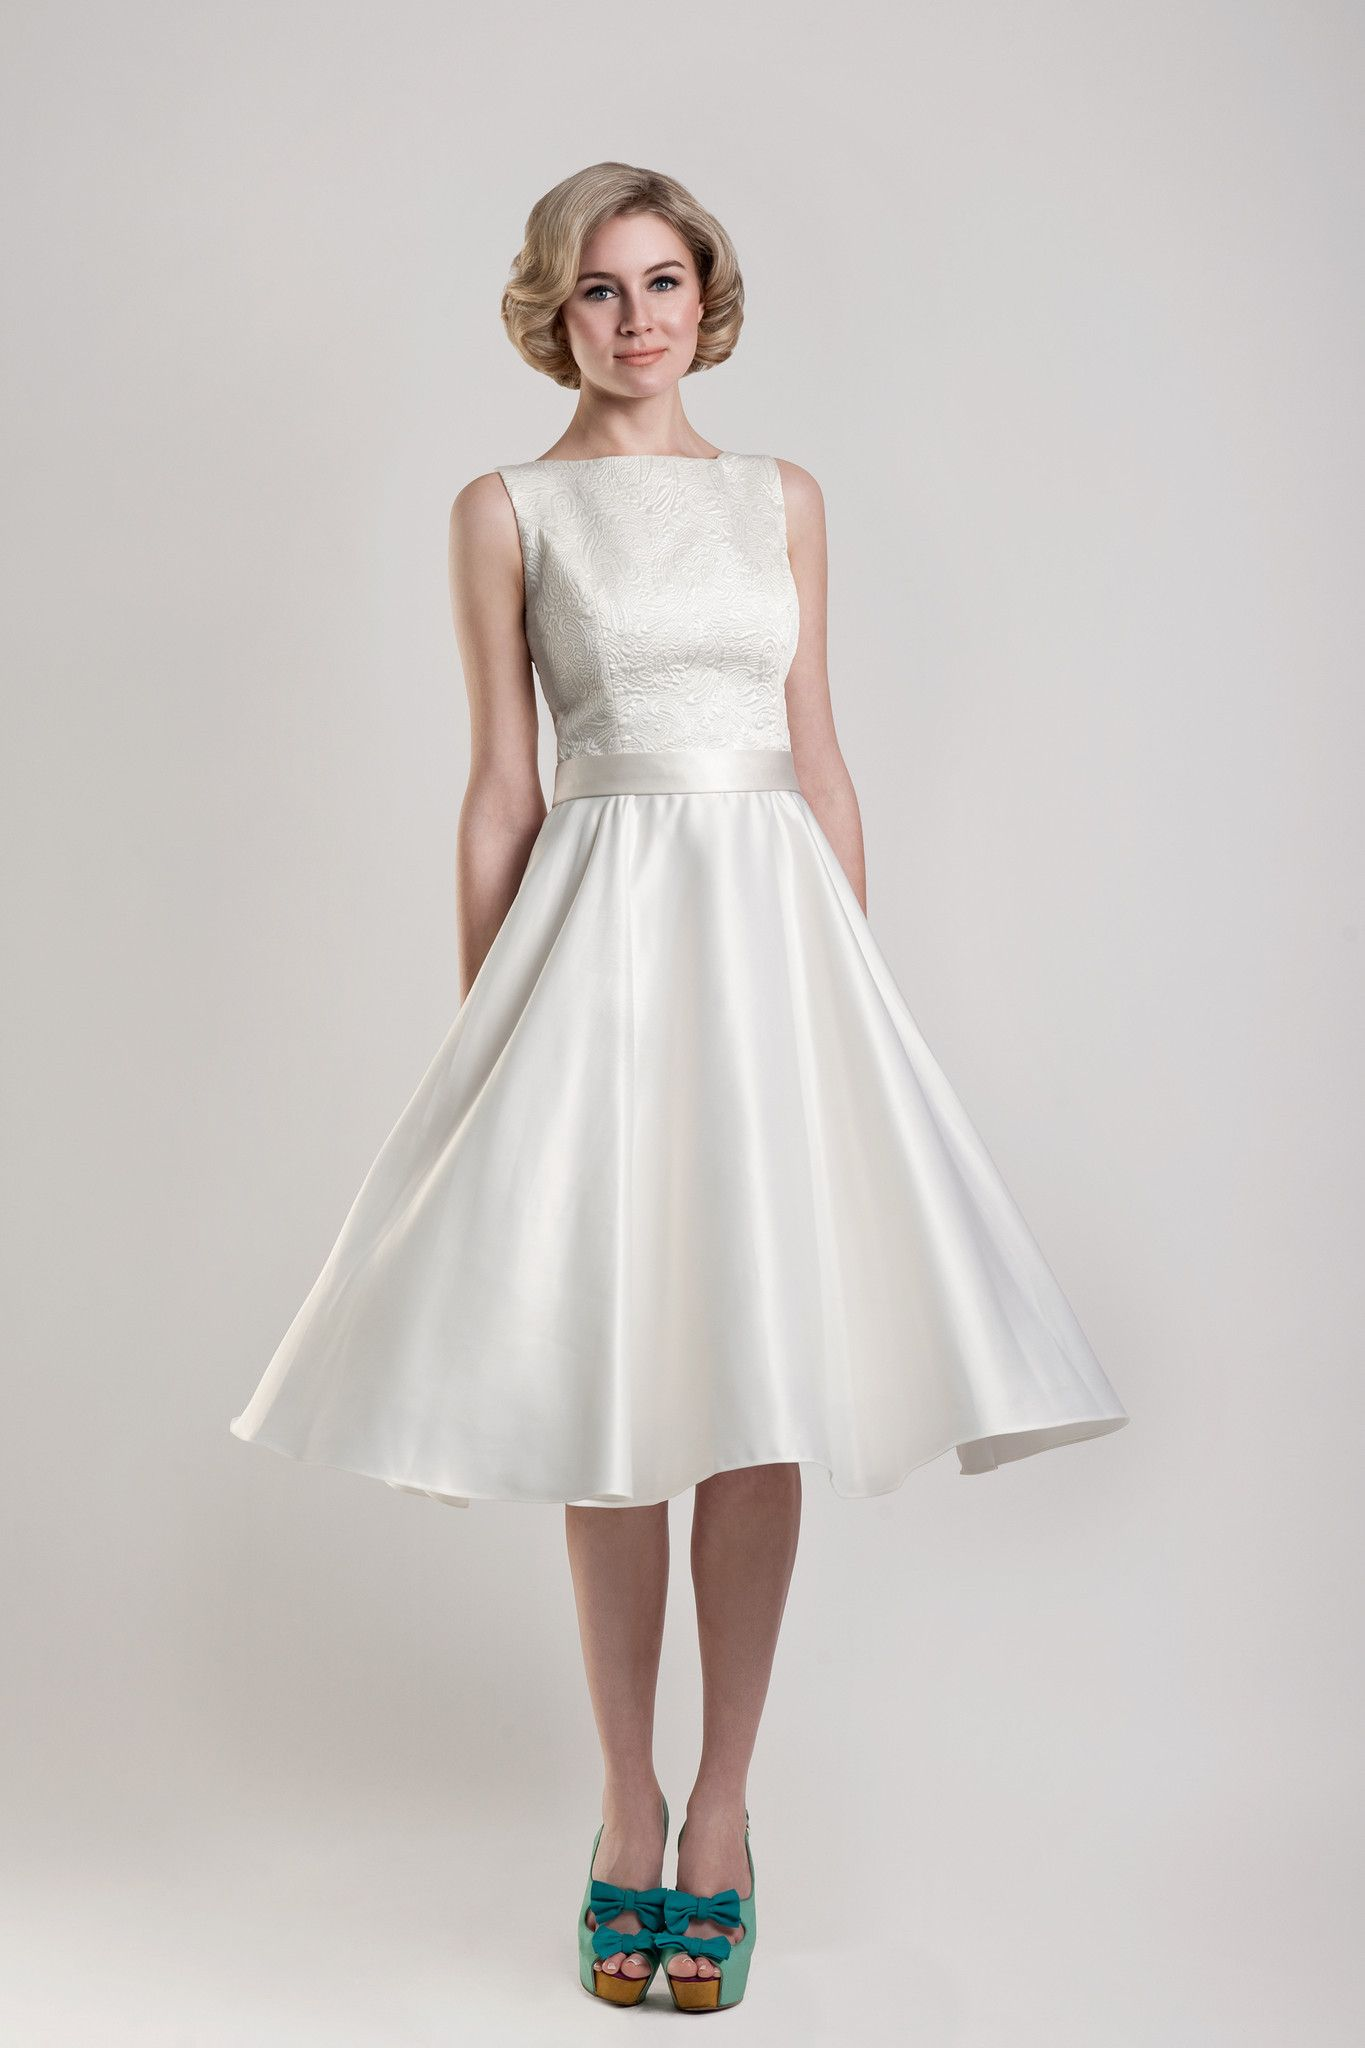 Short wedding reception dress  tea length wedding dresses  Tea Length wedding dresses  Pinterest